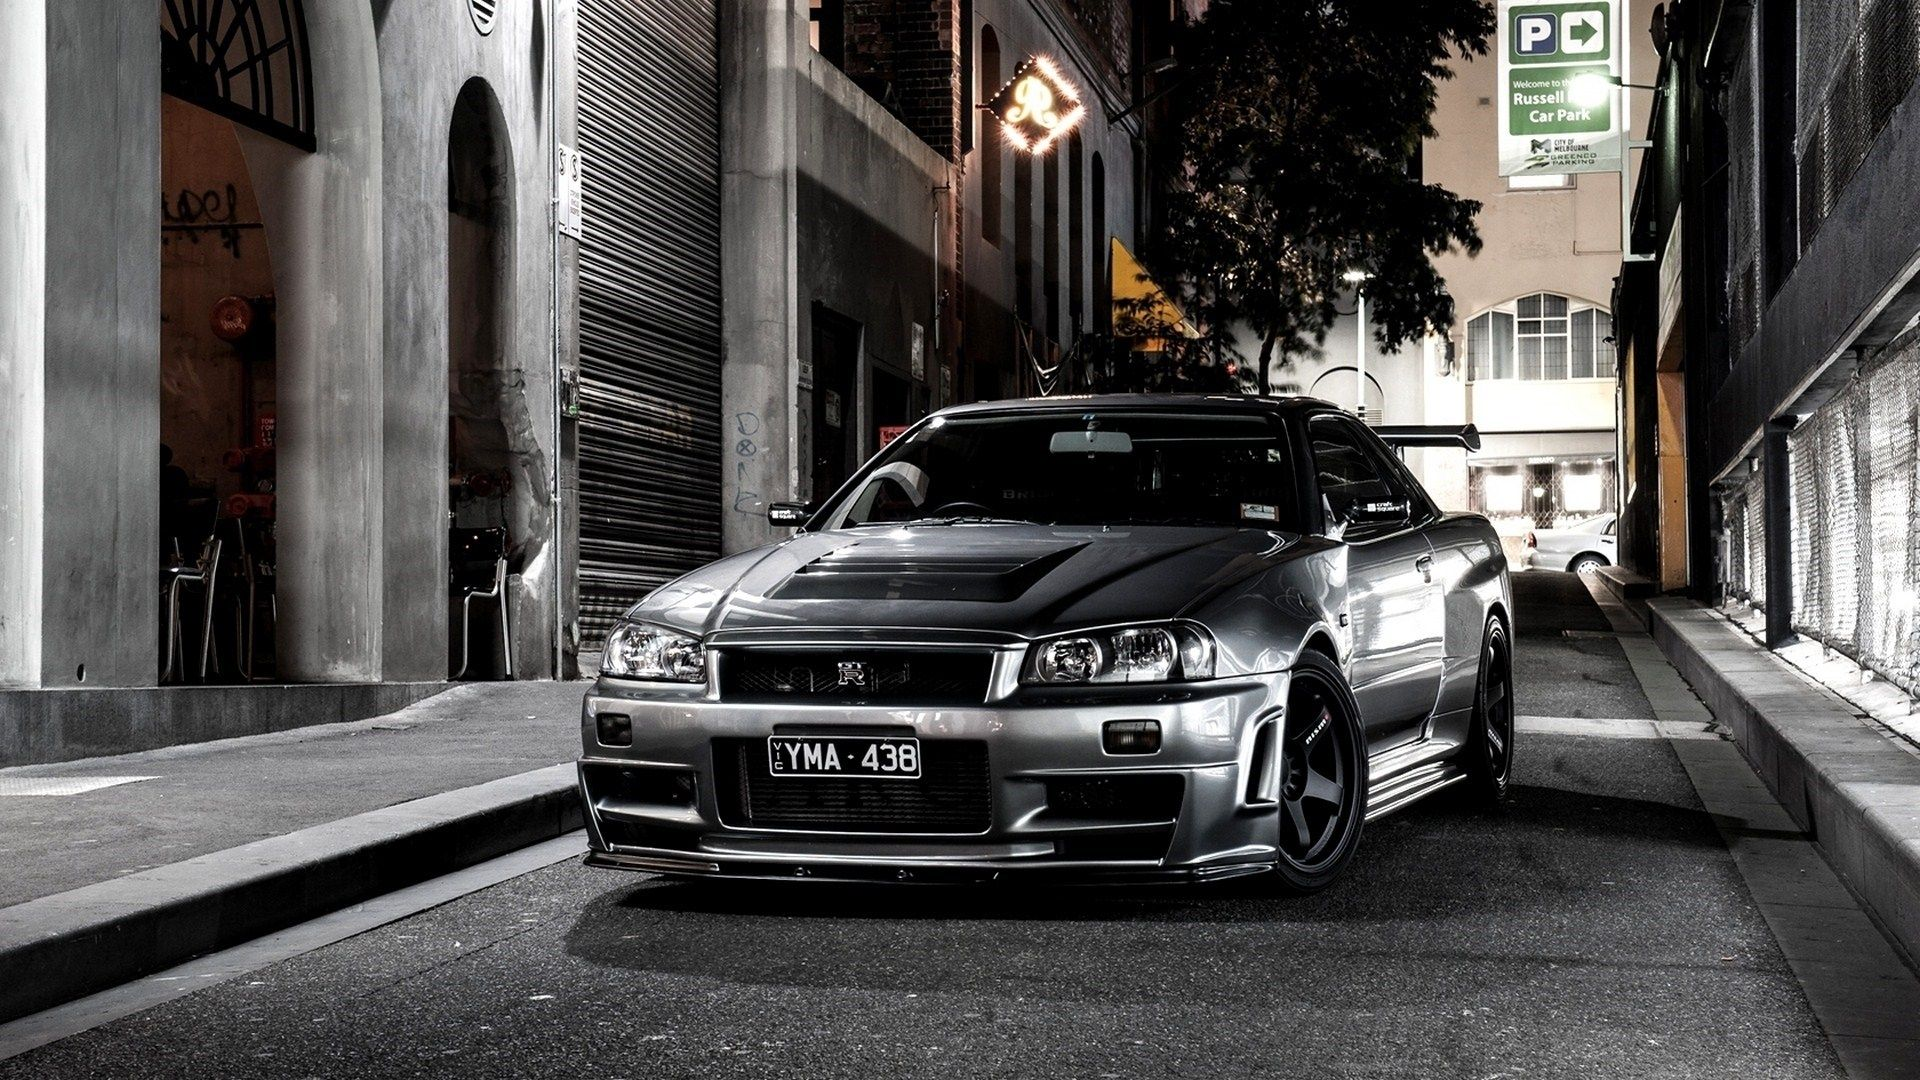 Image For Nissan Skyline R34 Japan Car City Street Night Wallpaper